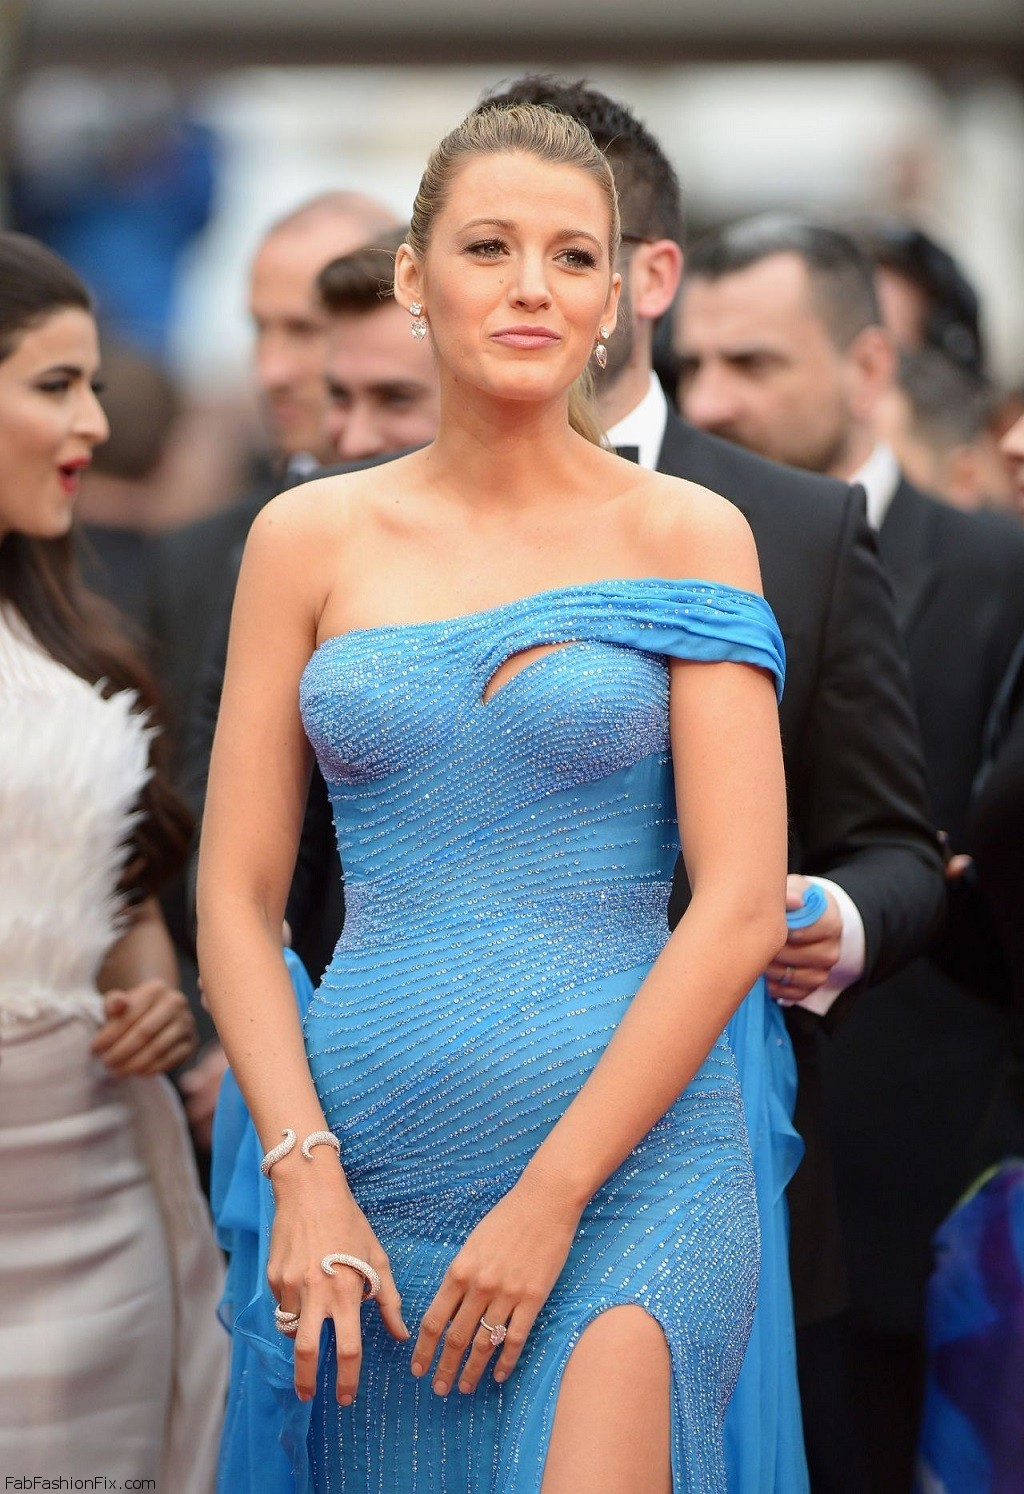 blake-lively-the-bfg-premiere-cannes-film-festival-in-cannes-5-14-2016-2